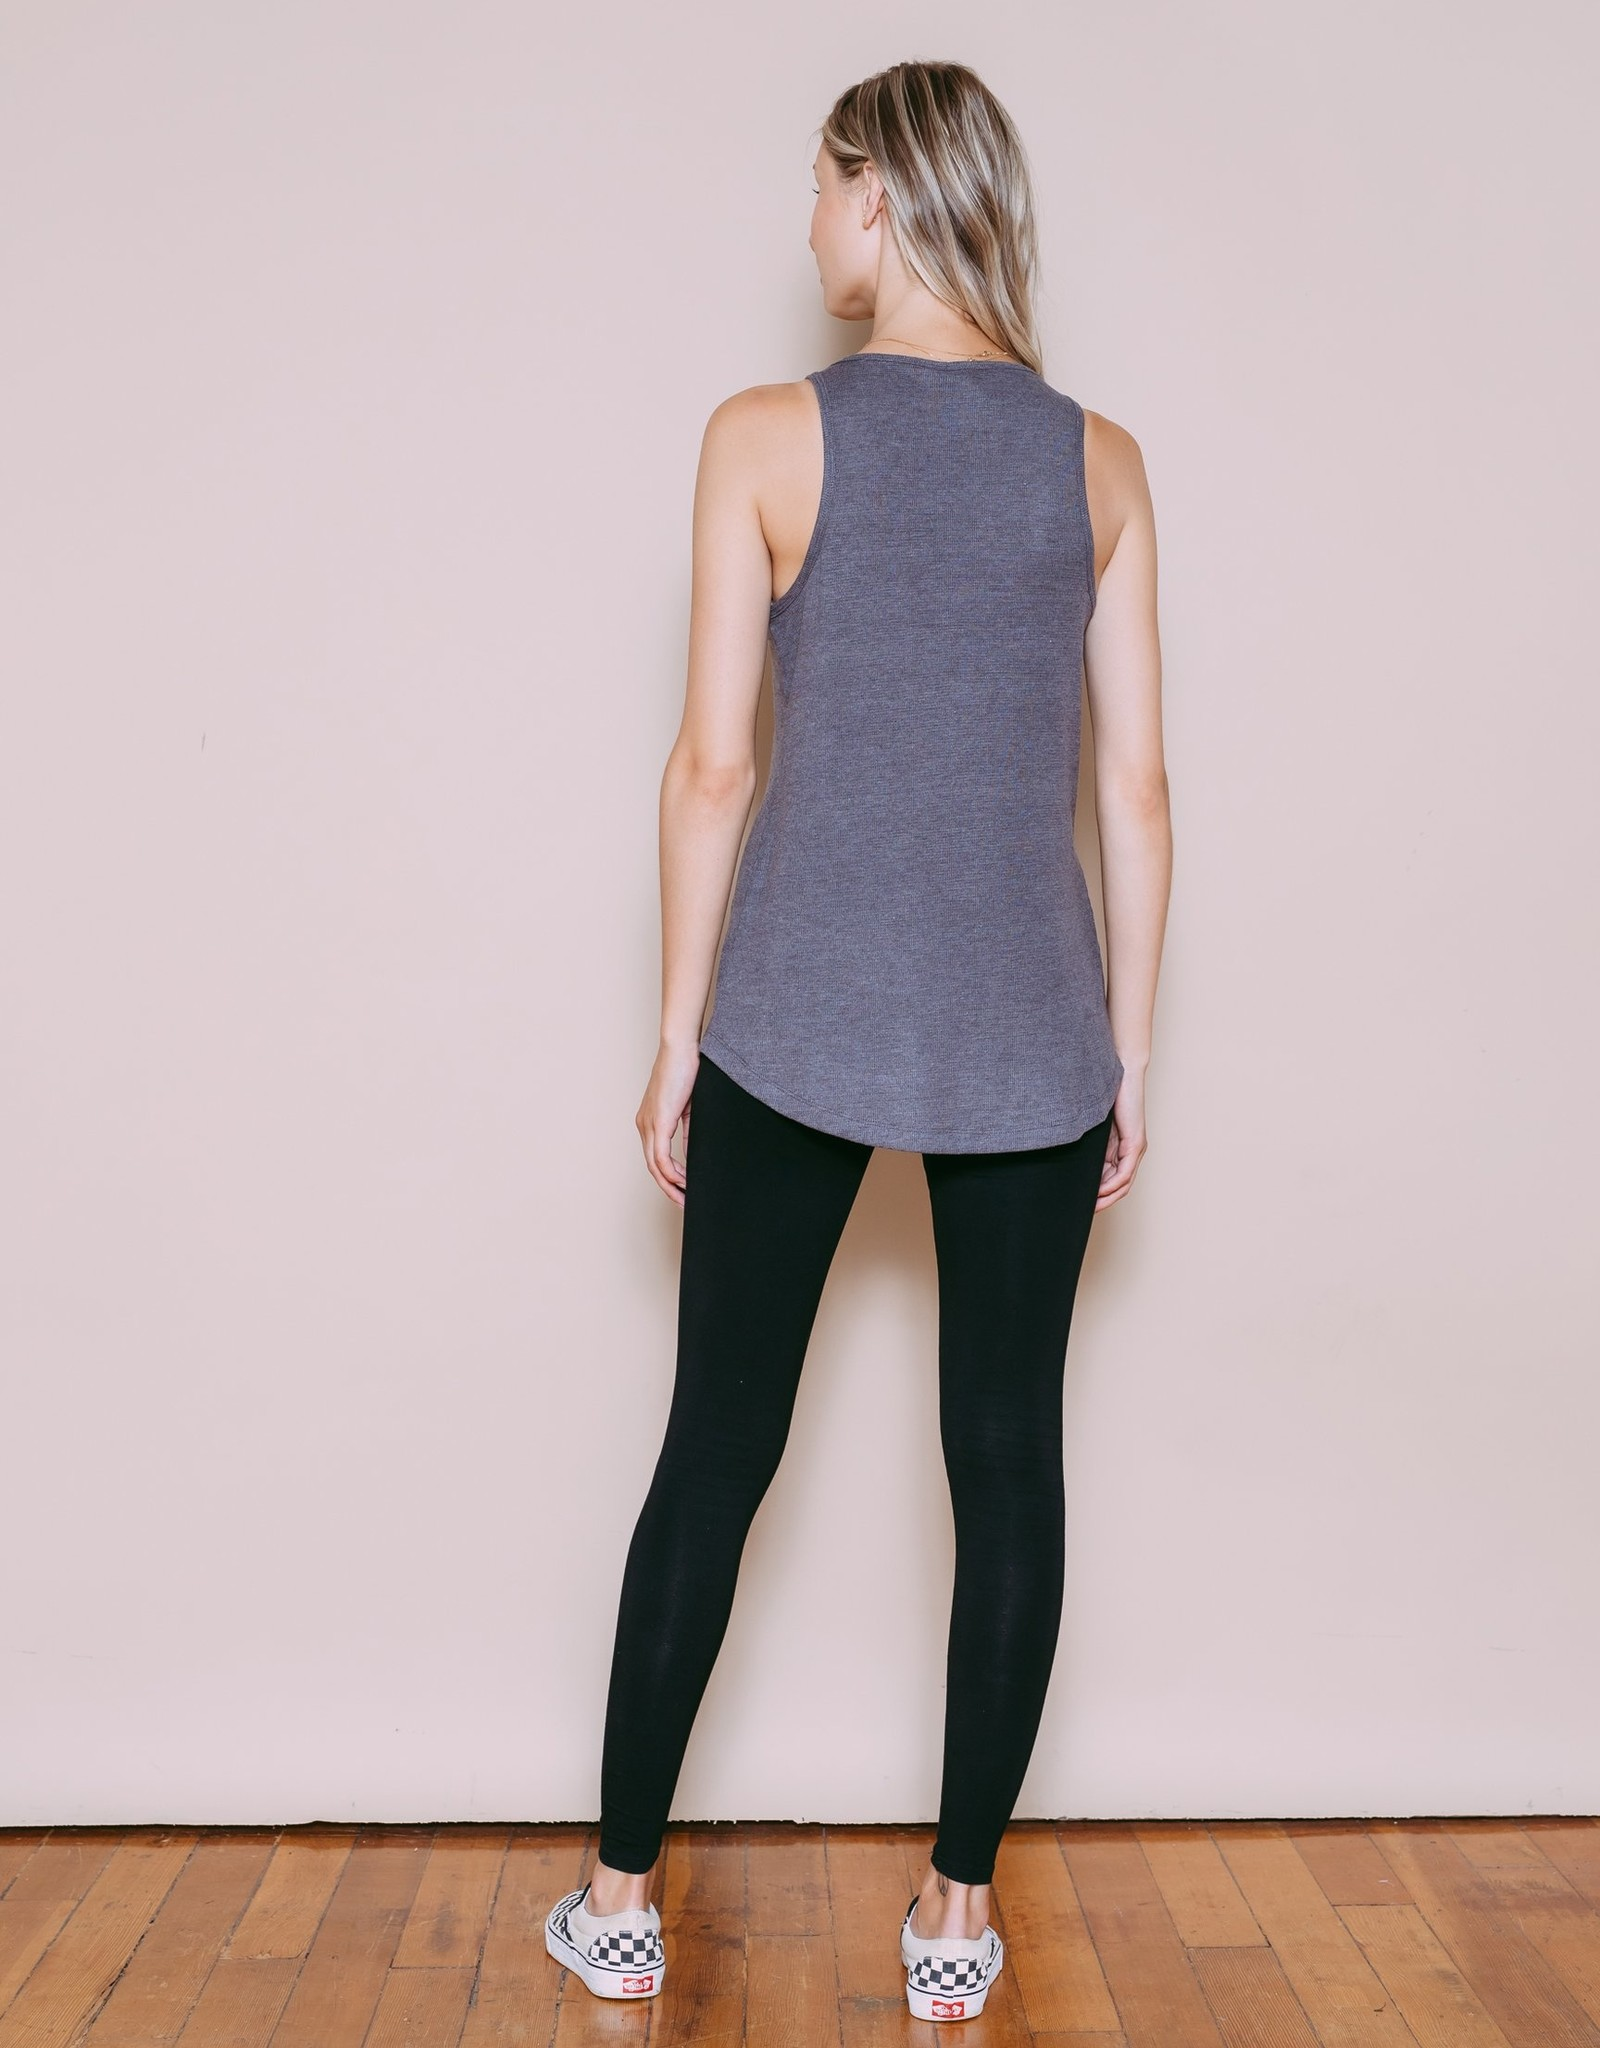 Orb Clothing Eloise Tank